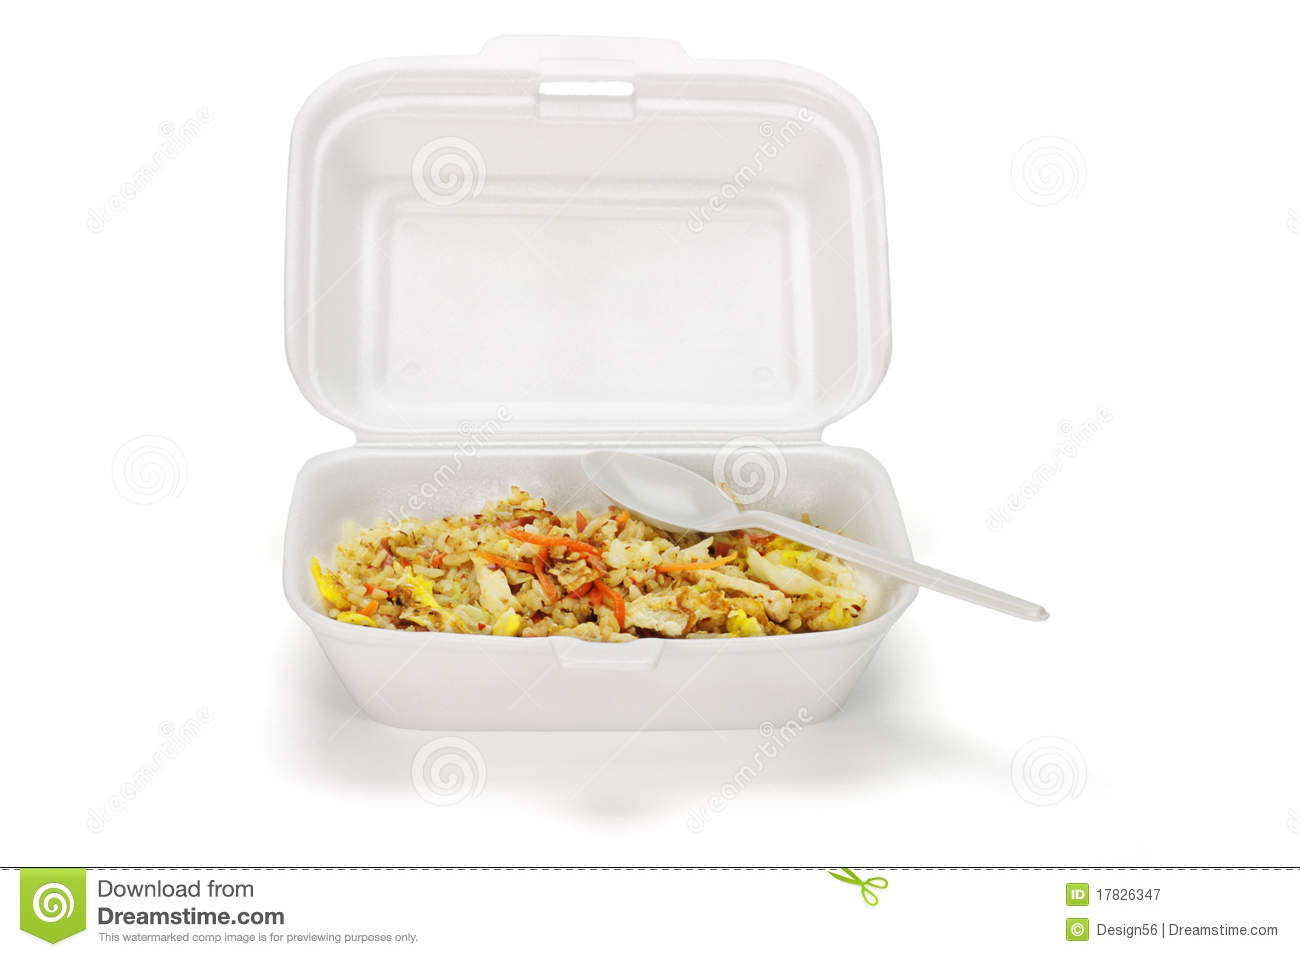 Fried Rice In Styrofoam Box Royalty Free Stock Photography   Image